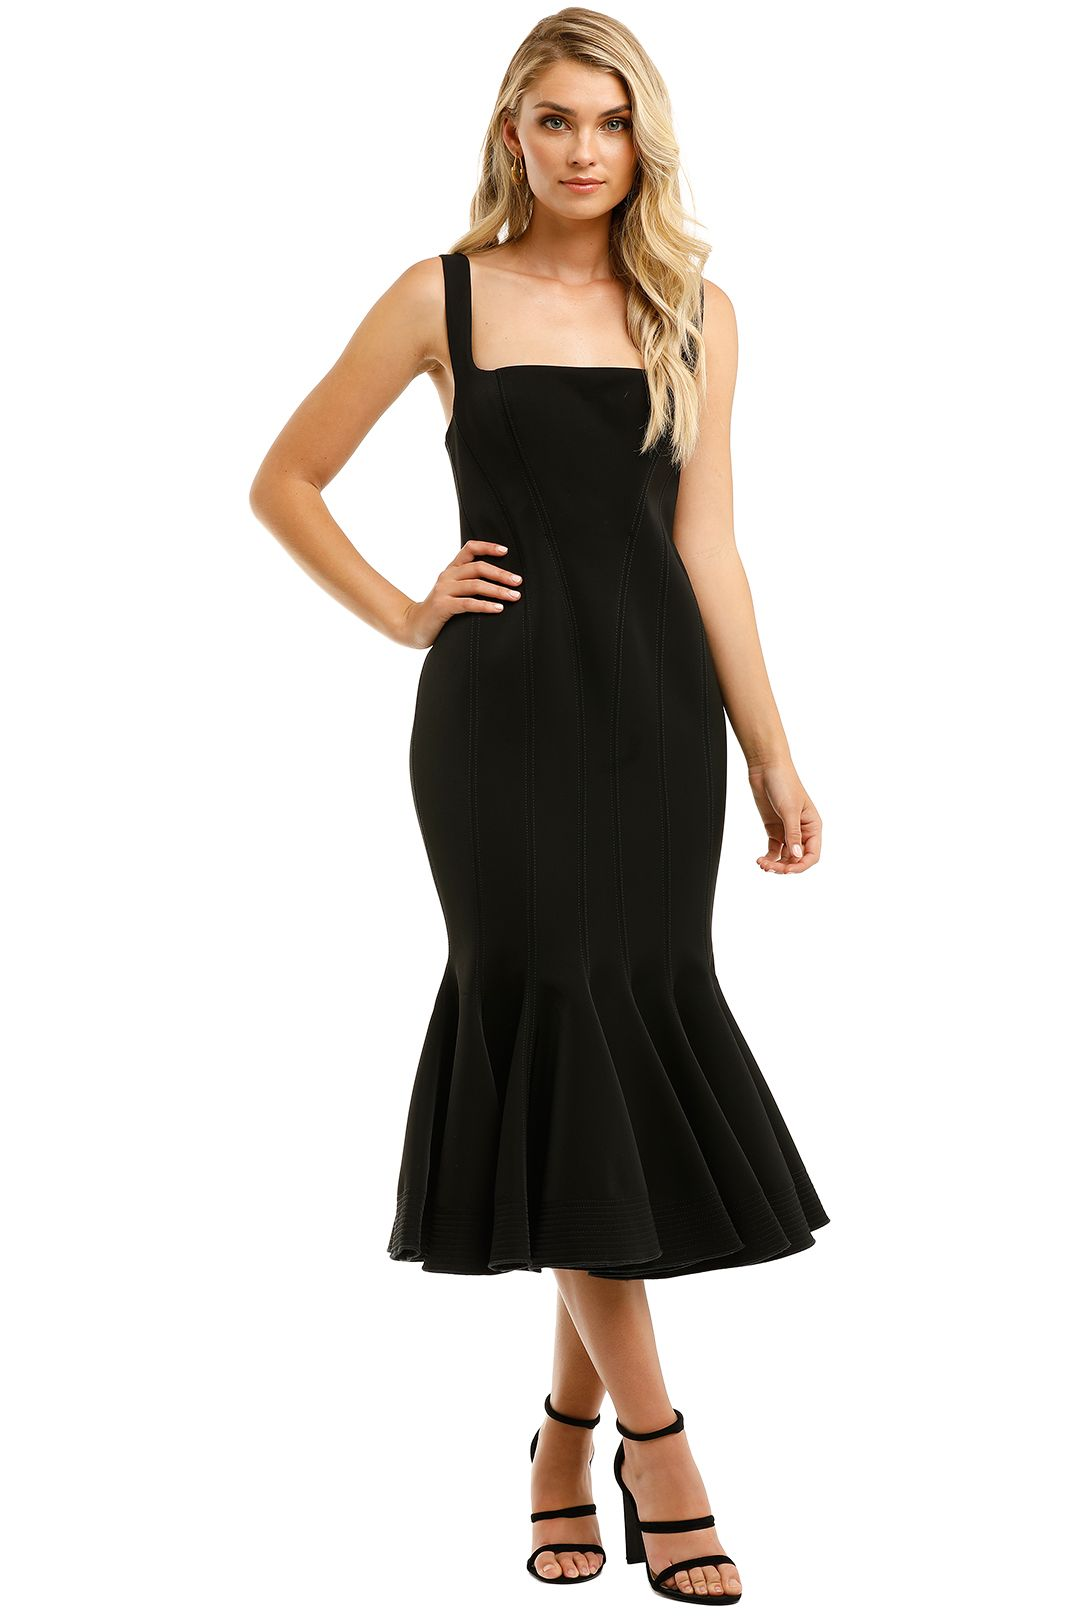 Acler-Mawson-Dress-Black-Front